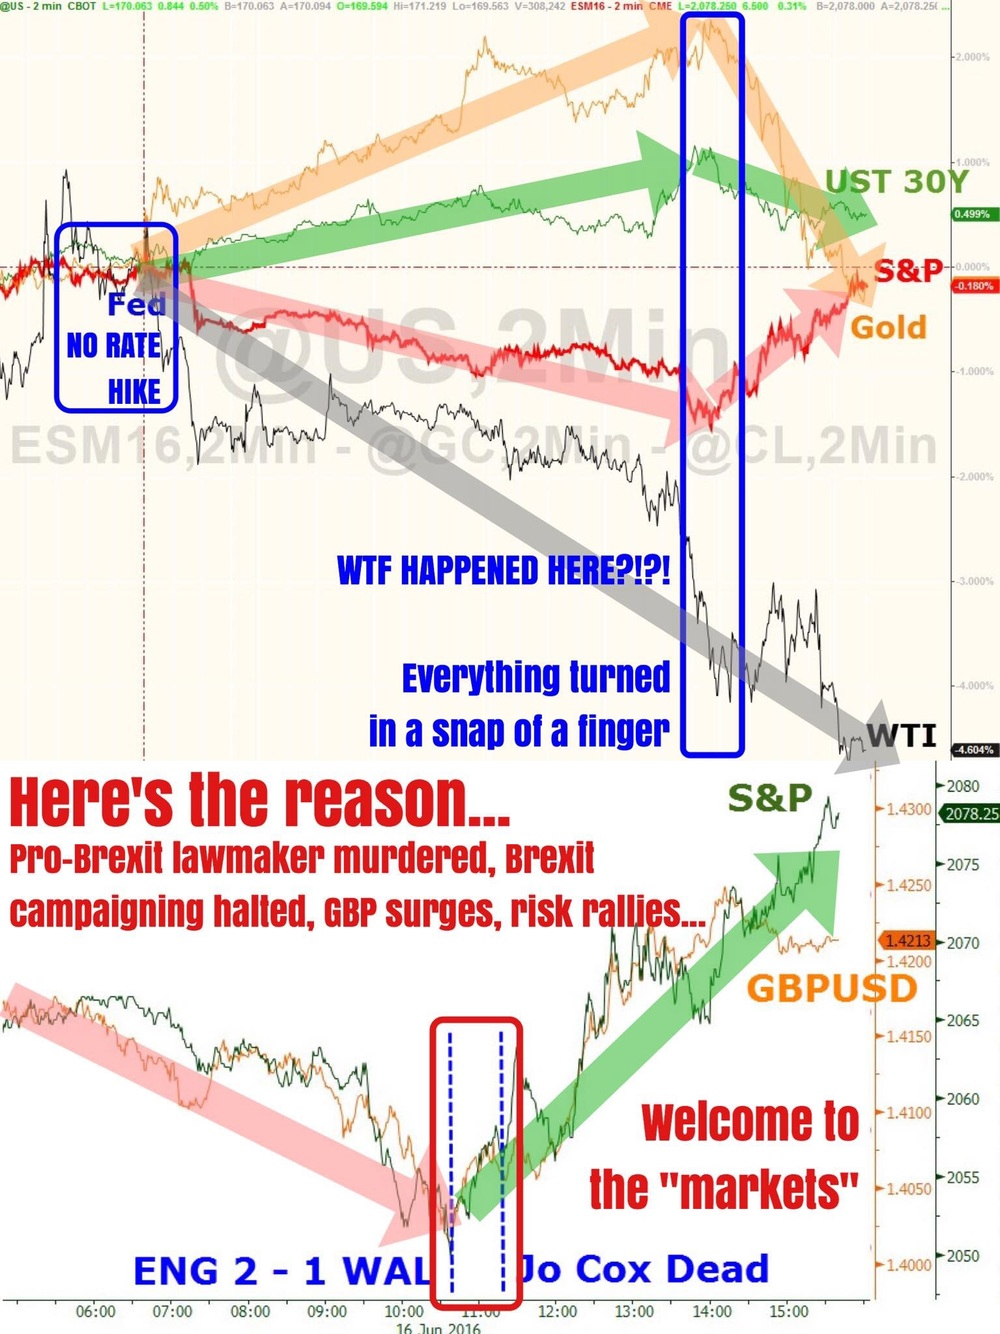 """What happens when a mindless market crashes on fears of something stupid happening, something such as Brexit (which no one really knows the outcome of until a week later), overshooting bearishness, climatic fear, and senseless panic selling? Well the opposite happens on the slightest of events.    These charts tell the full story and we needn't repeat ourselves. The event that reversed most markets from their post FOMC trends was the killing of British pro-Brexit law maker. The person was shot dead, leading to what was a micro capitulation in the short GBP, and long USD (yes, long USD even after a pretty dovish June FOMC statement and press conference with Yellen...). So we got a sharp reversal in just about every asset class besides oil.    Stocks are not unchanged from pre-FOMC, gold is lower, yields are only slightly lower (from very much lower)... Like we said, trading this market is akin to gambling without knowing one's odds. So good luck try to wit out a senseless market. We wish to have nothing to do with this...""    Business Of Finance on Facebook, 17 June 2016"